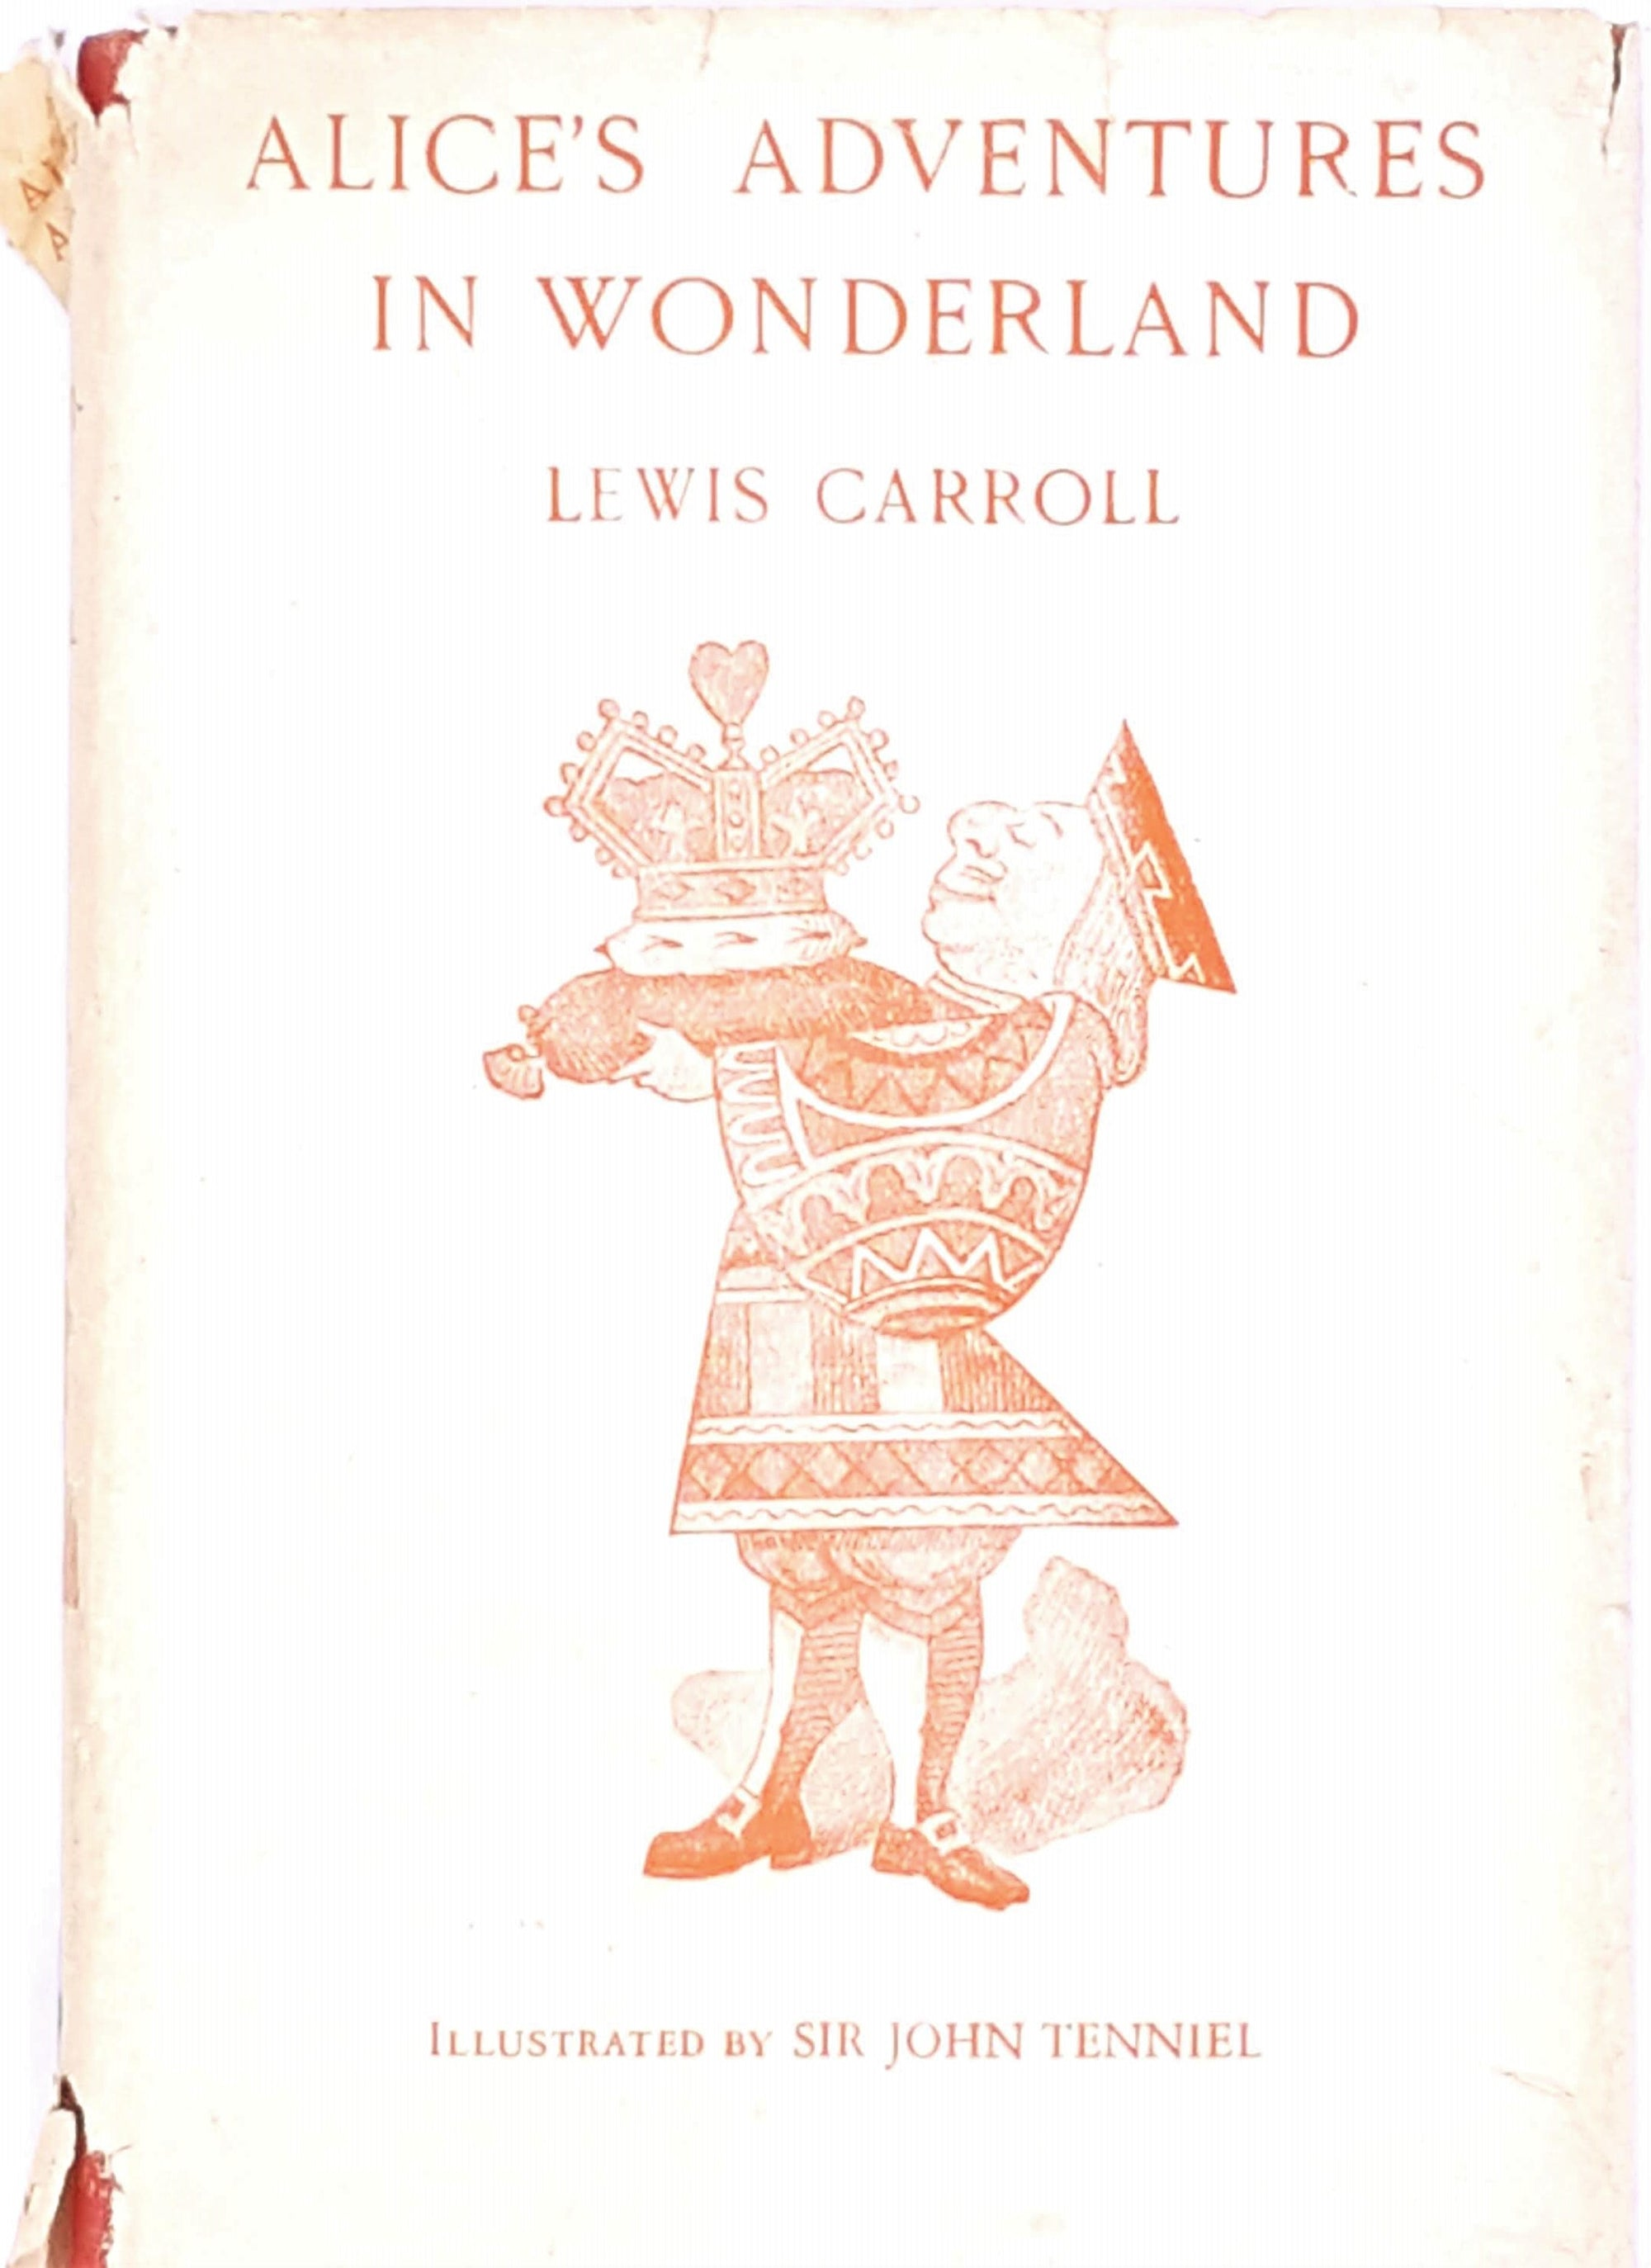 Alice's Adventures in Wonderland by Lewis Carroll, 1941 Macmillan Edition